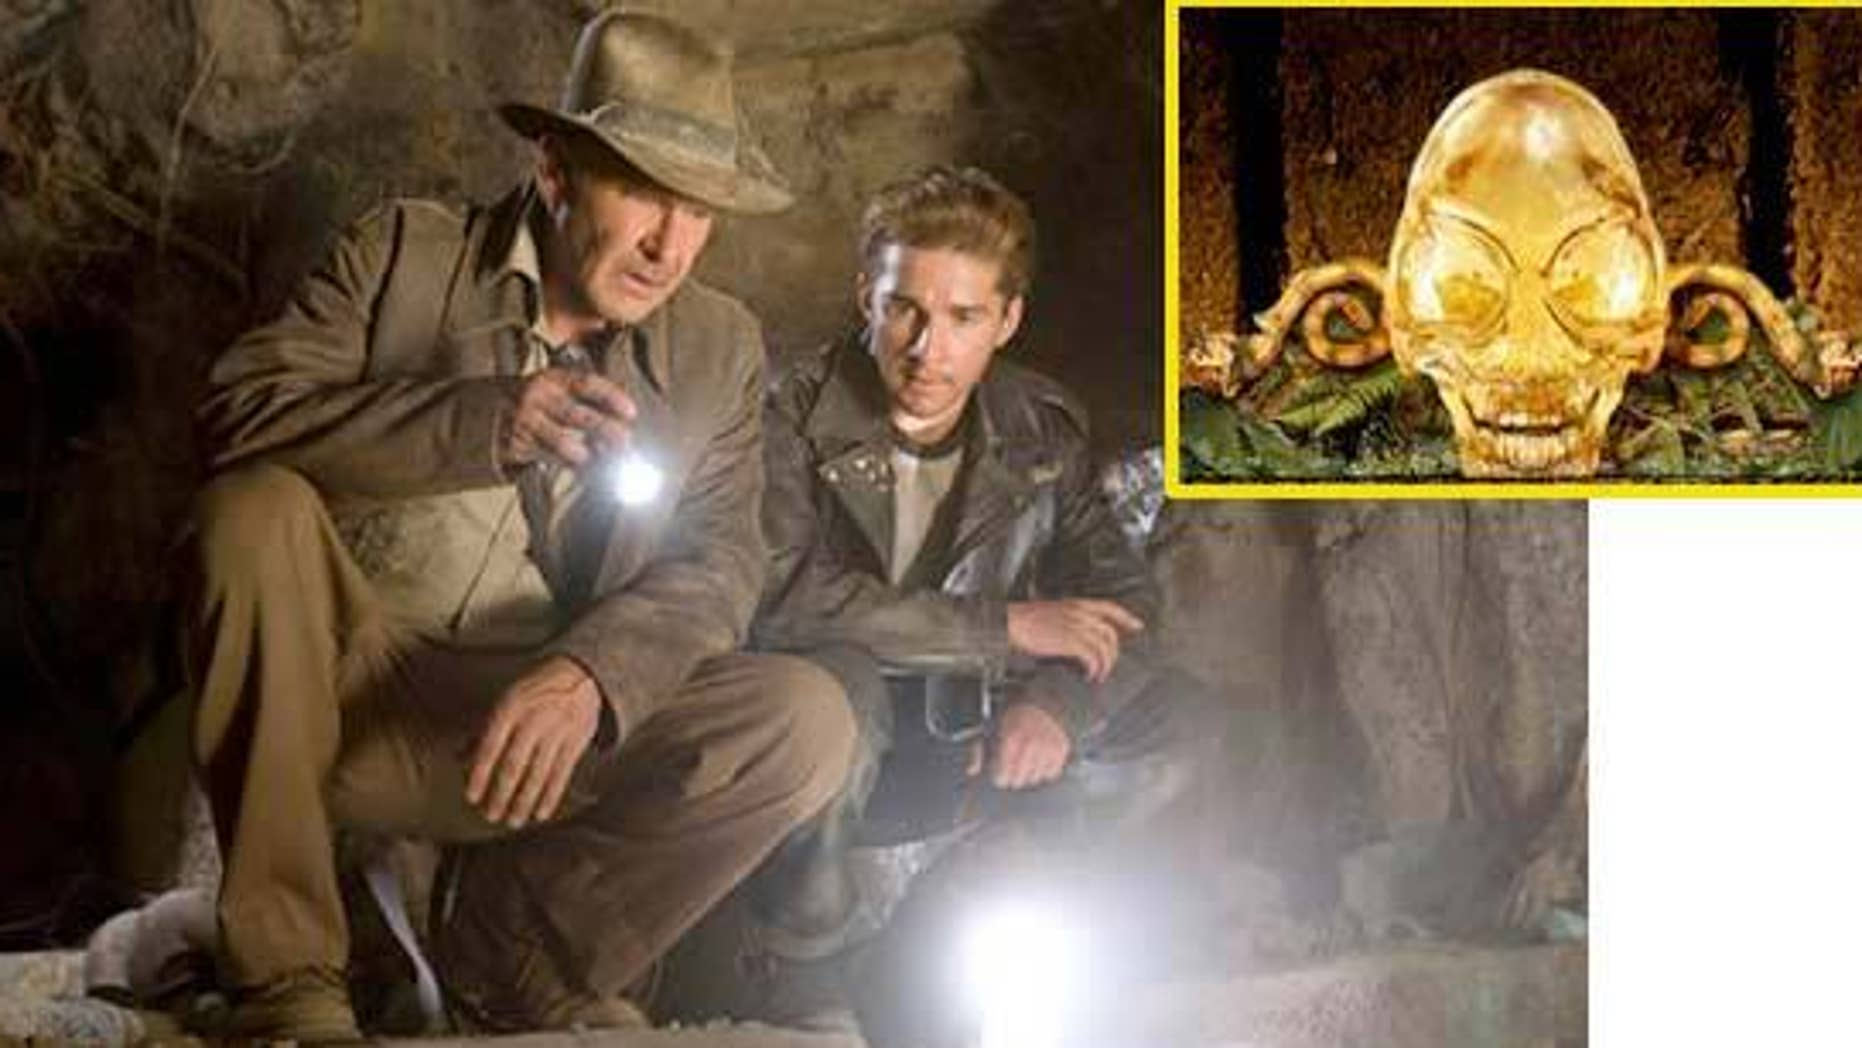 """Harrison Ford and Shia LaBeouf in a scene from """"Indiana Jones and the Kingdom of the Crystal Skull,"""" out May 22. Also an illustration of the crystal skull."""